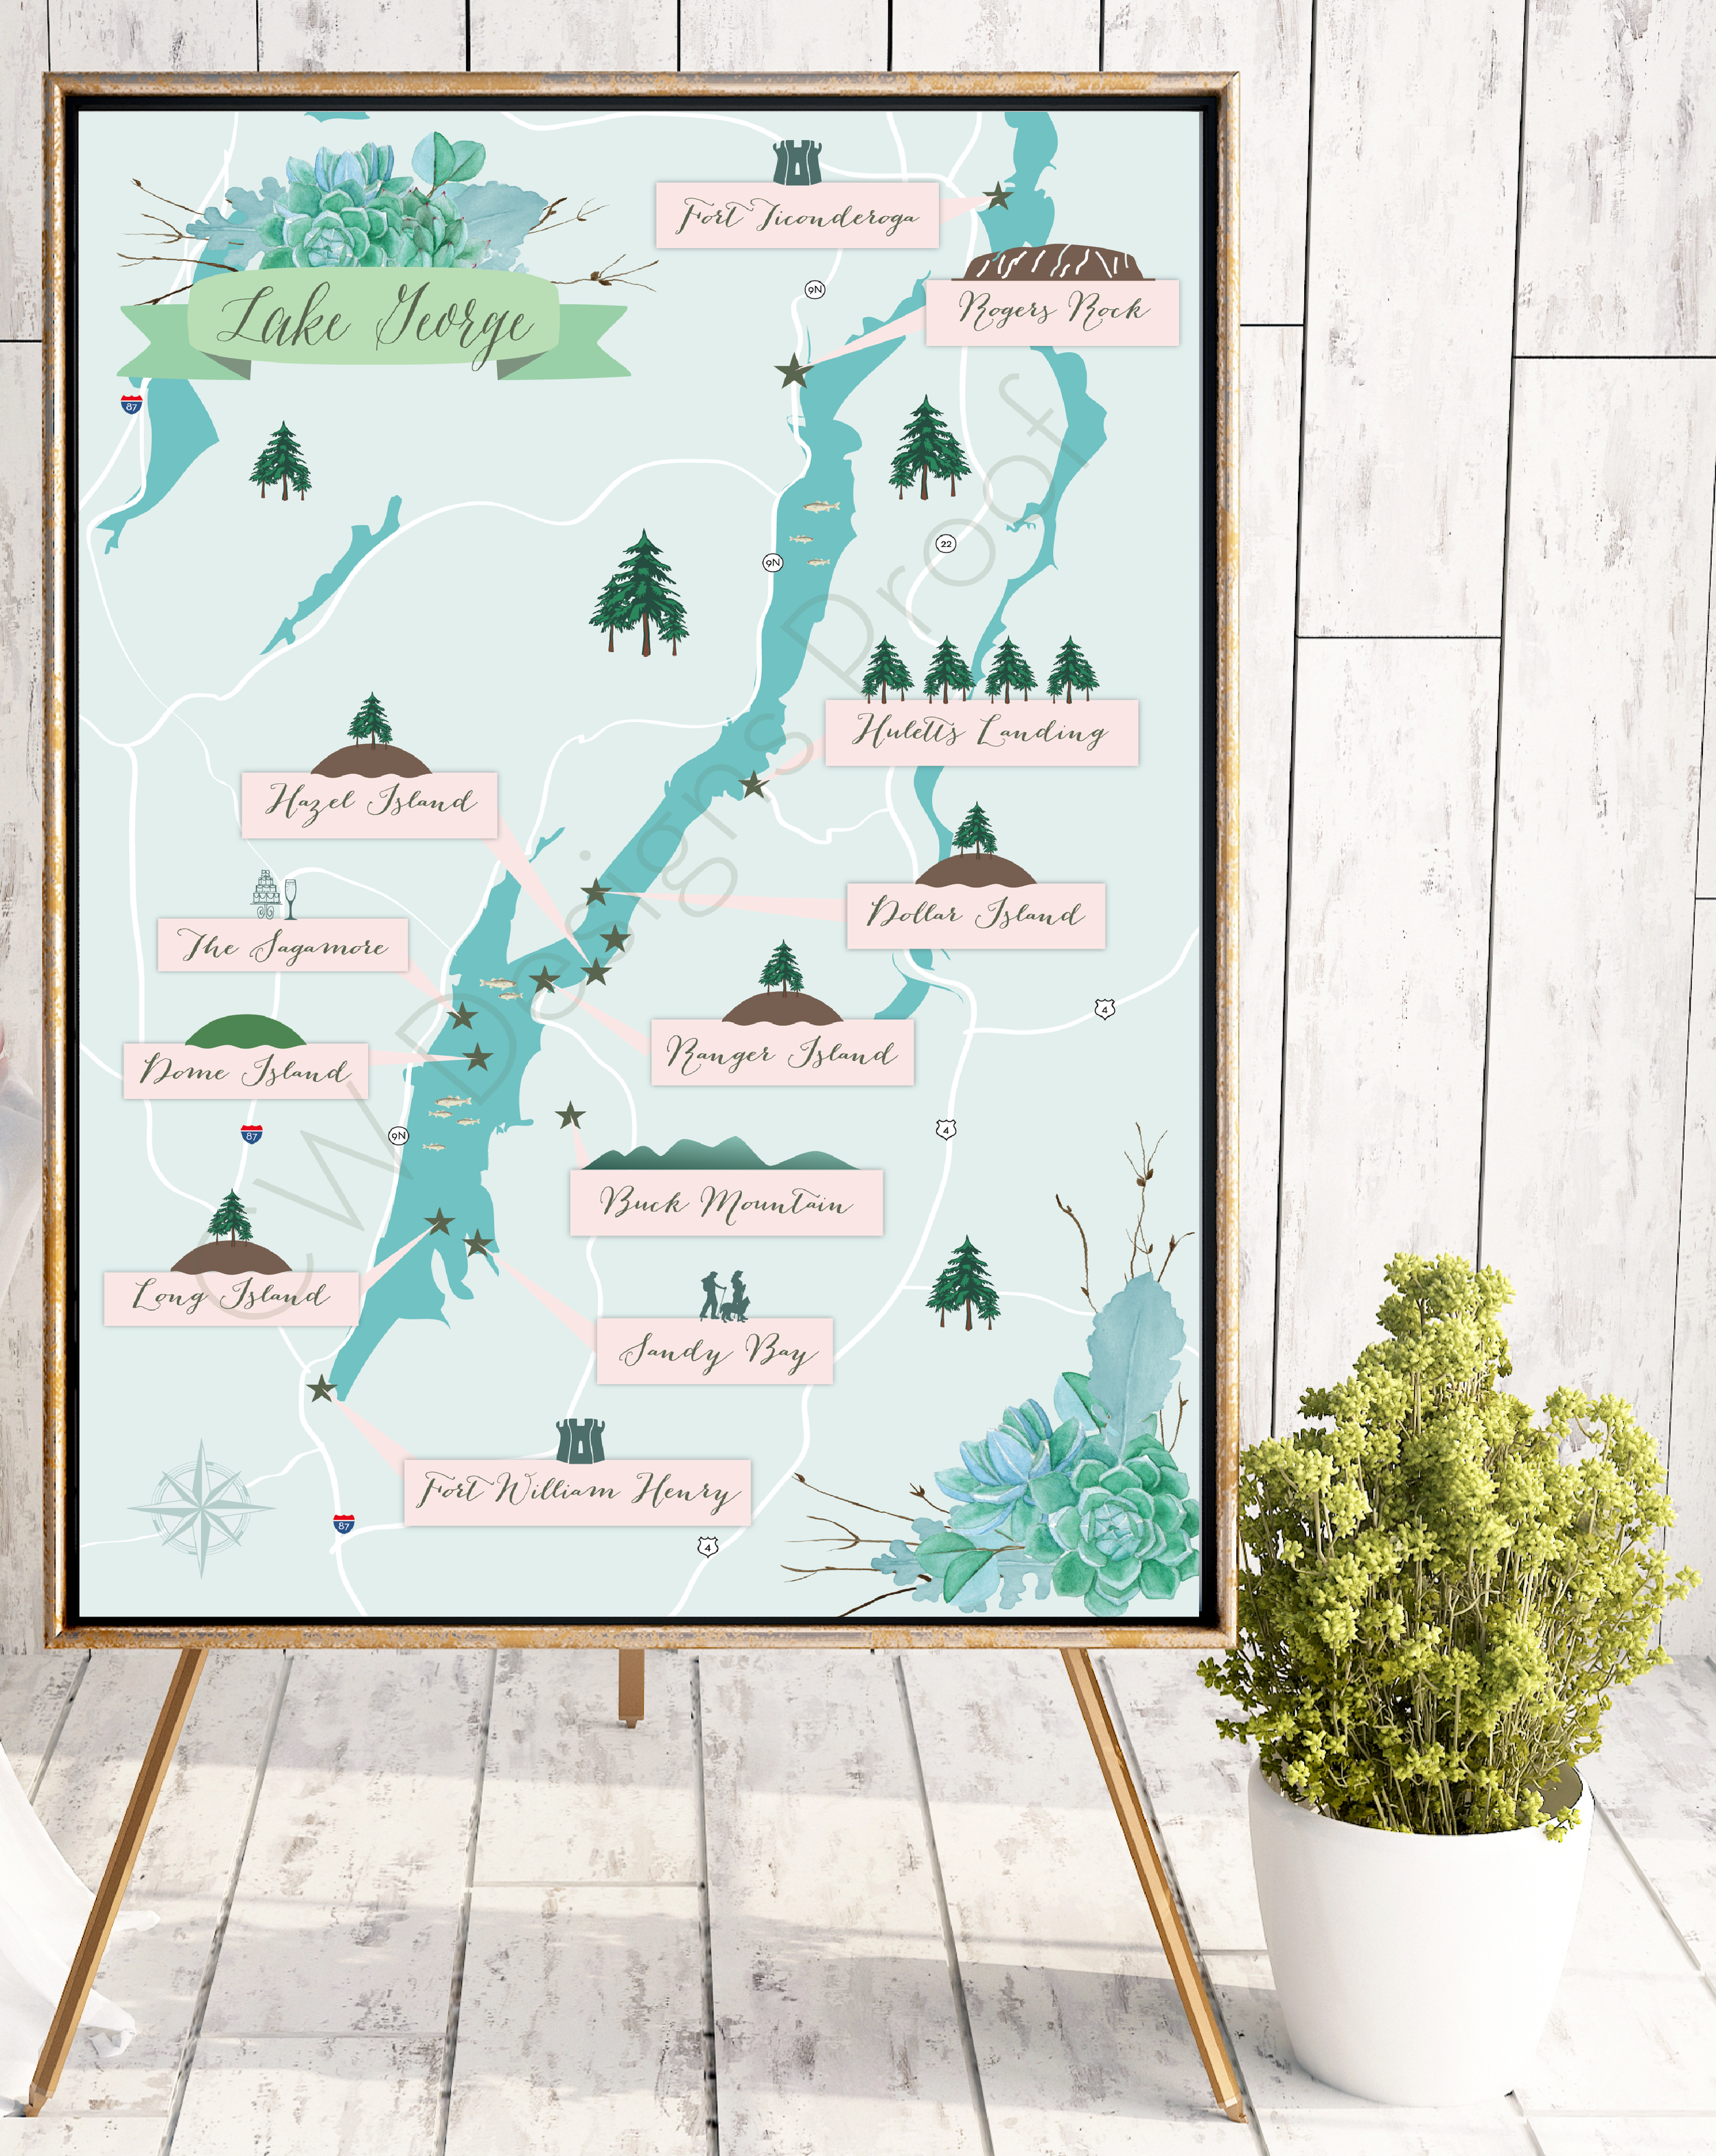 Canvas Mockup Portrait Wedding Seating Chart-01.png